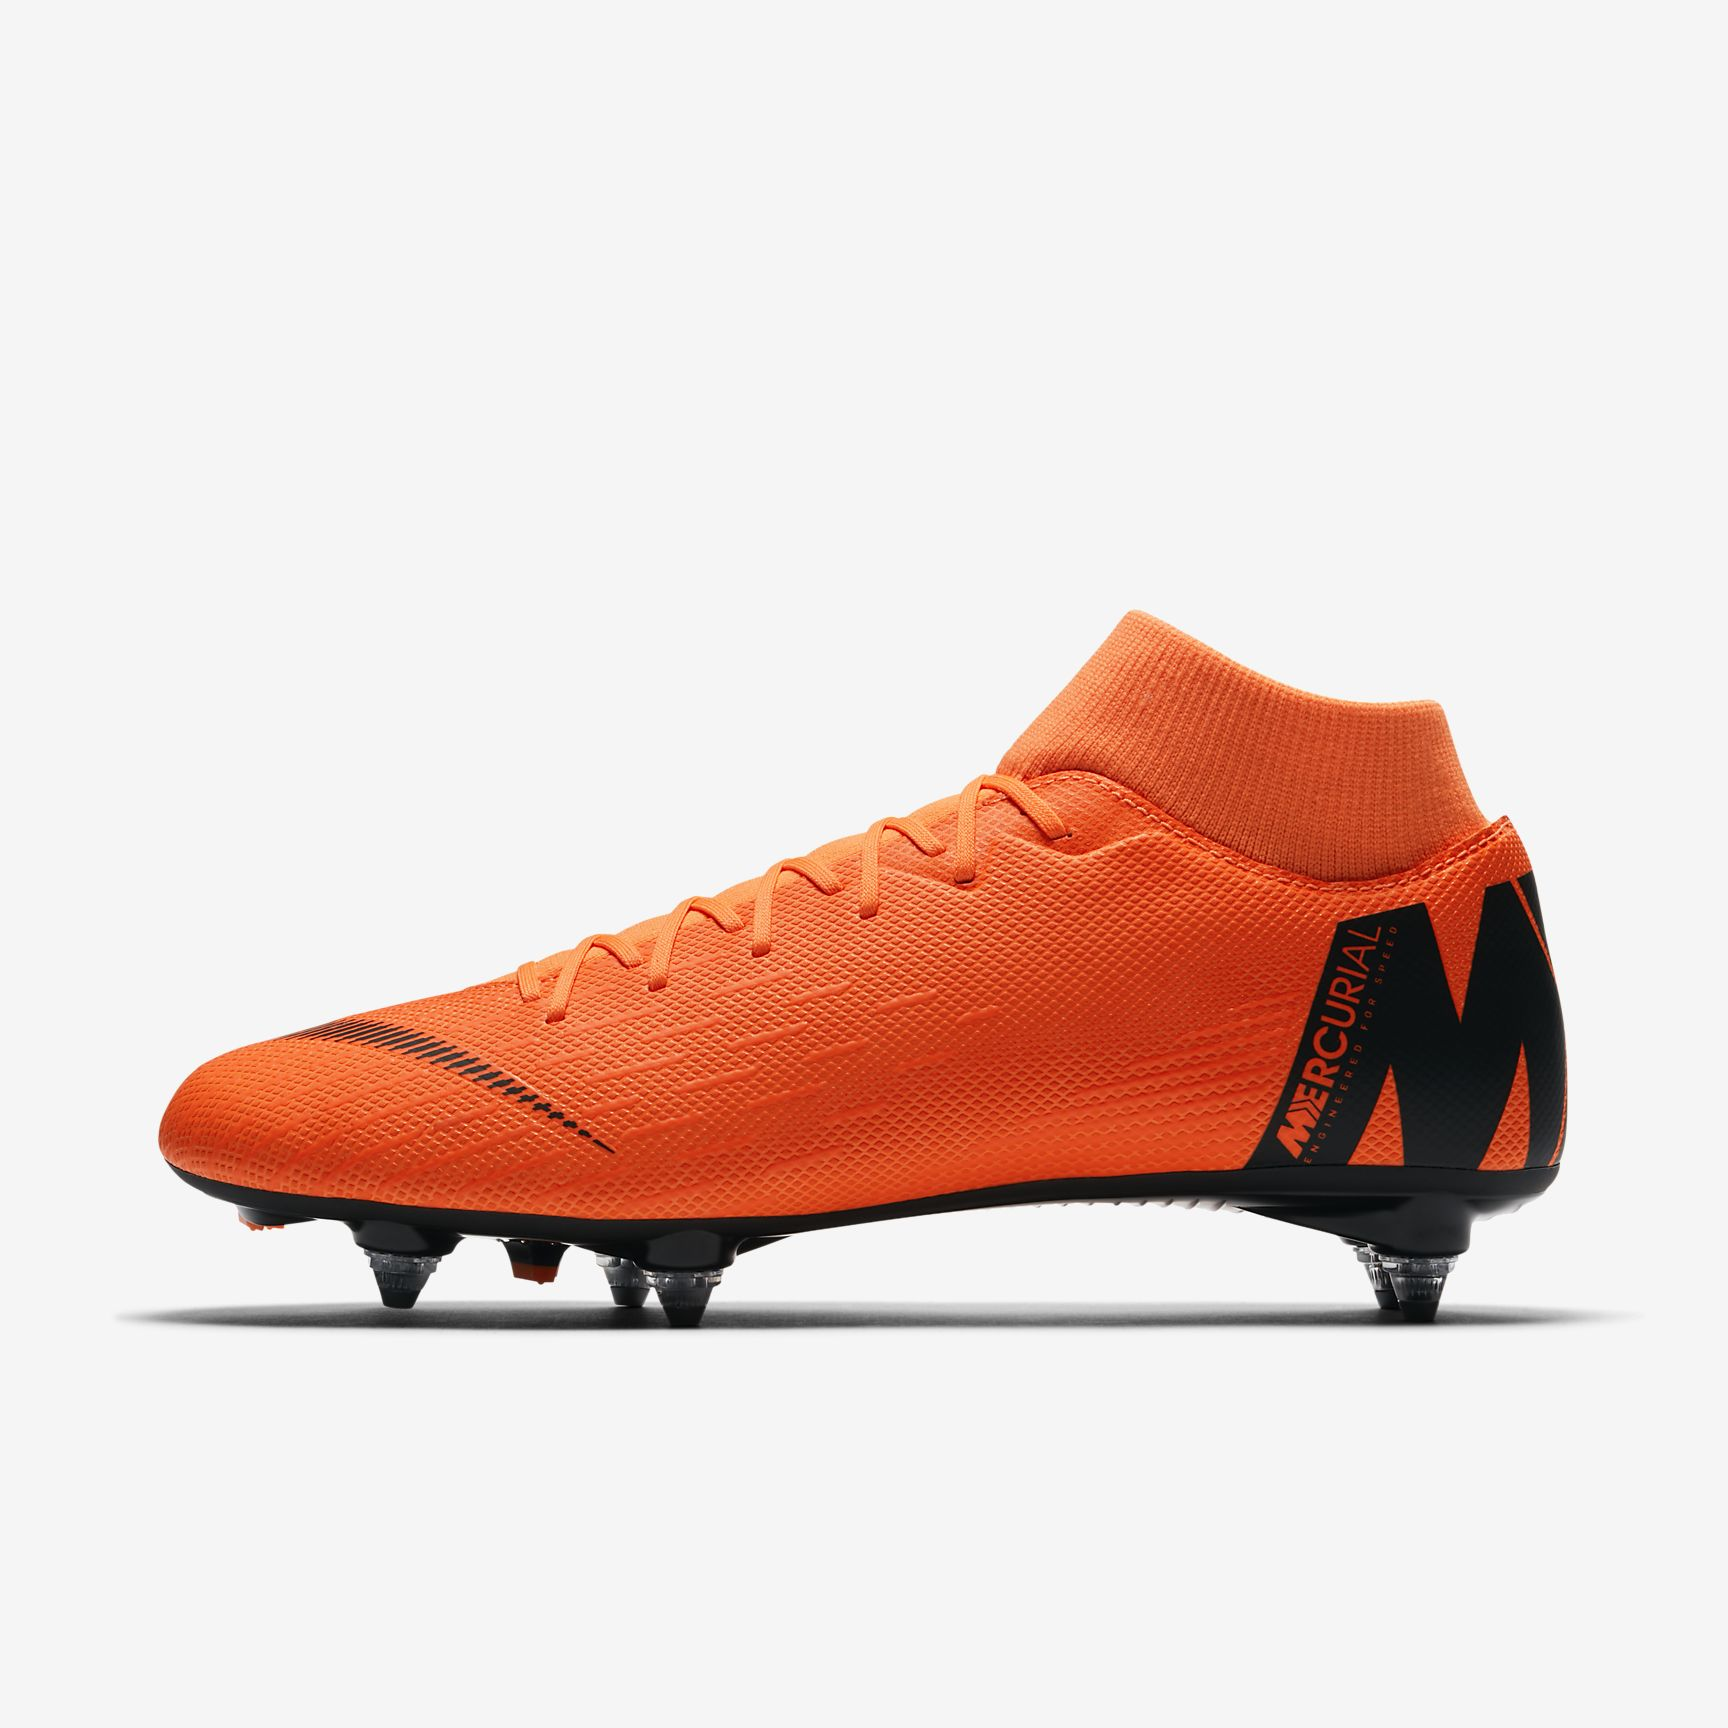 chaussures-football-Nike-Mercurial-Superfly-VI-Academy-img1